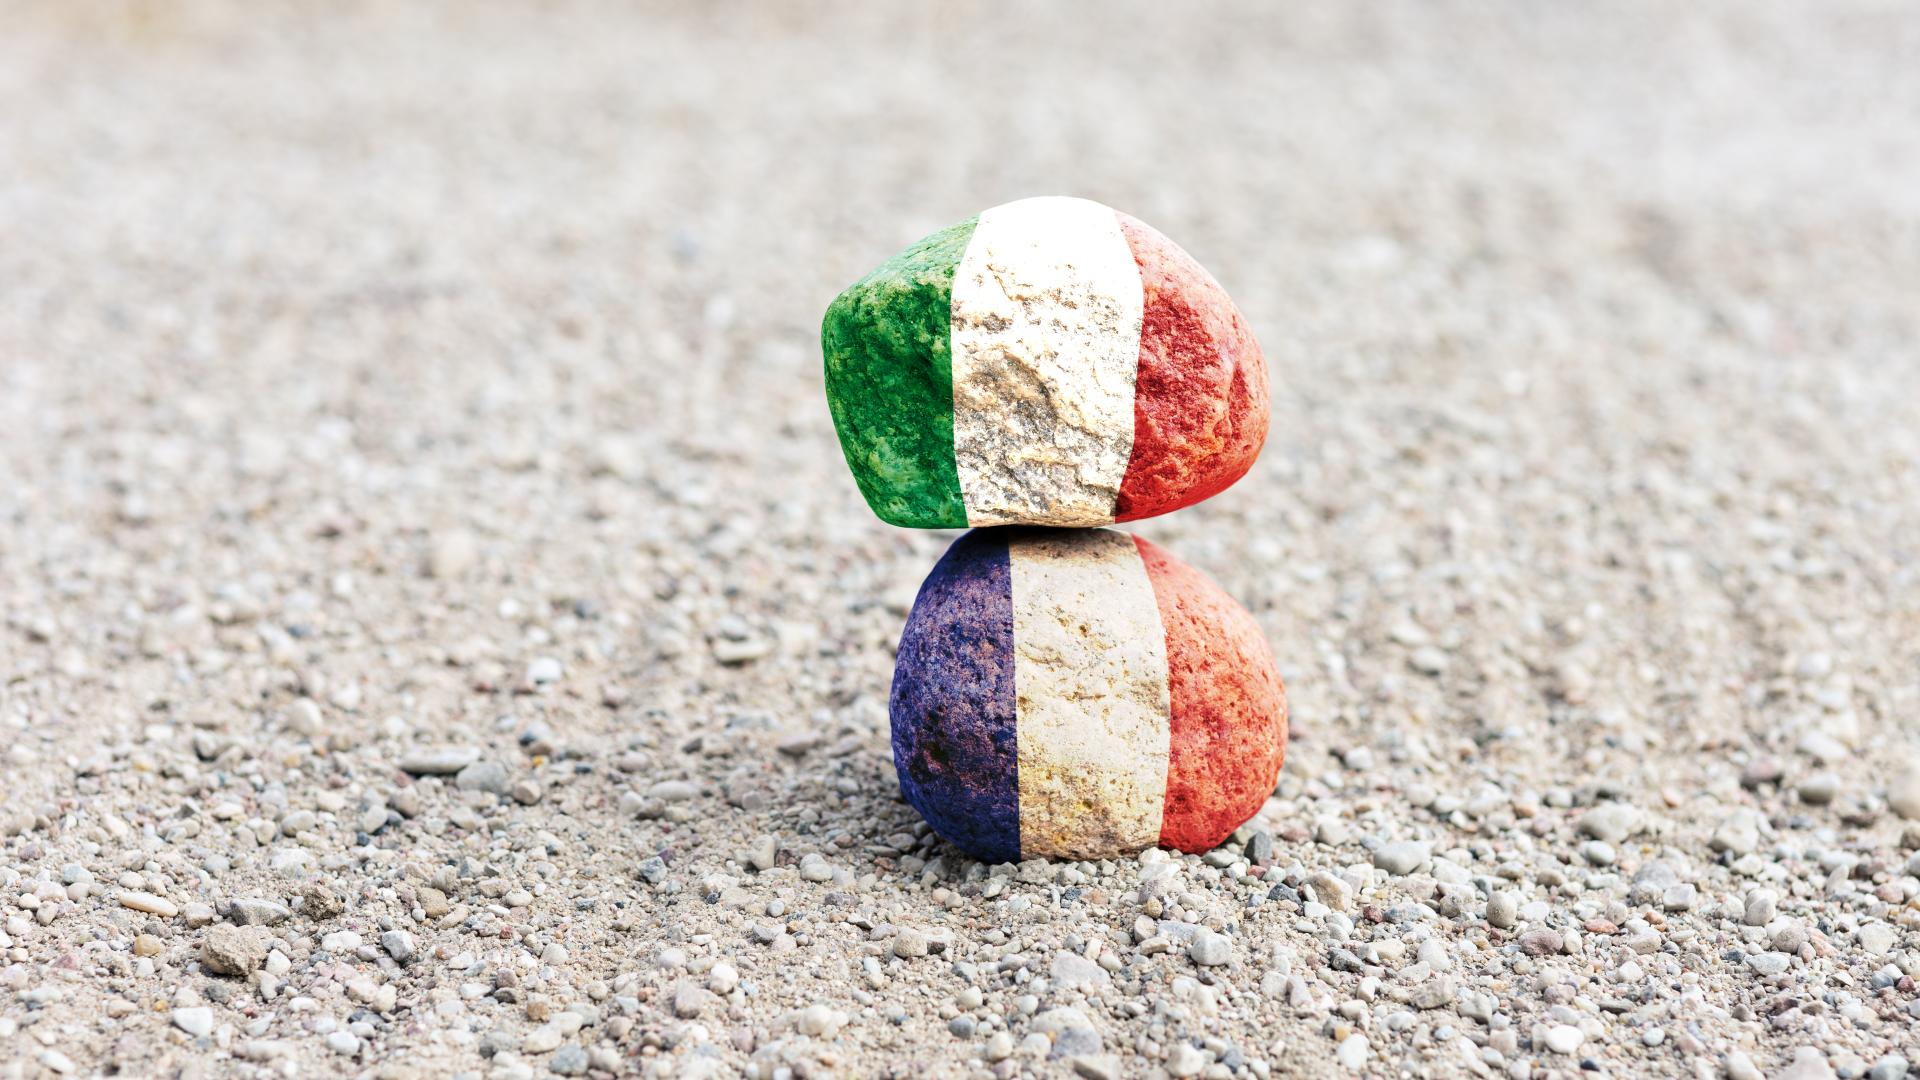 French and Italian flags painted on rocks